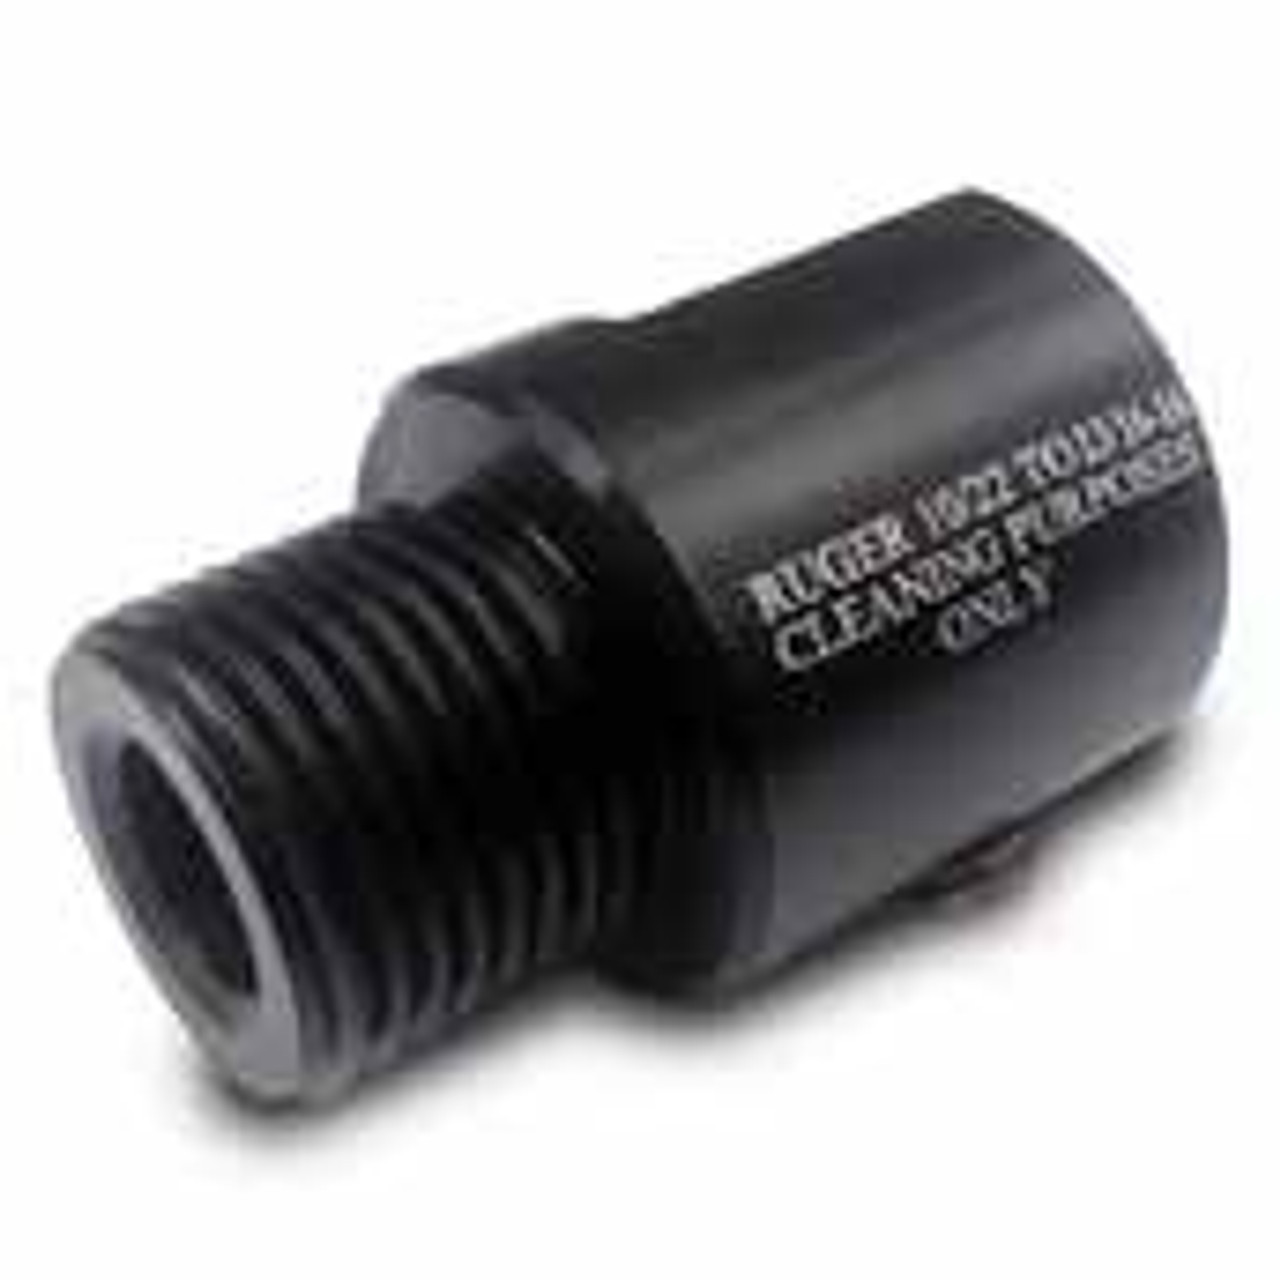 Slip-On Oil Filter Adapters